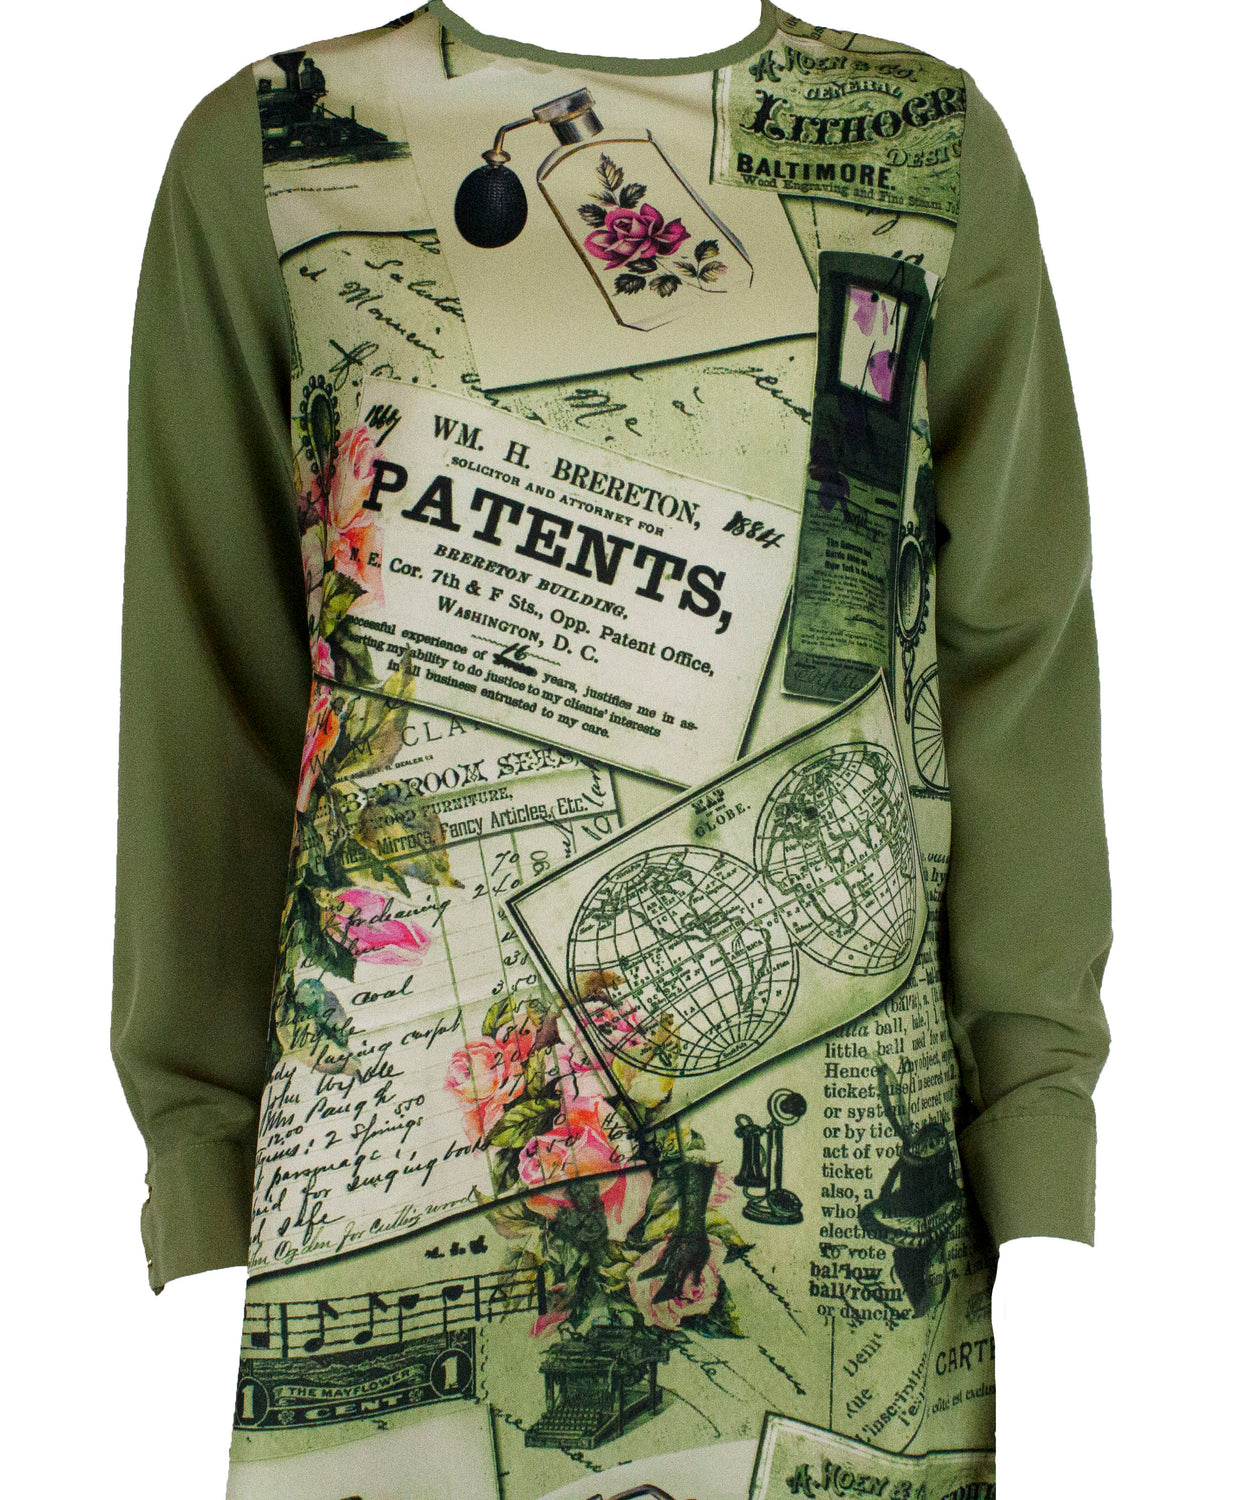 Mixed print with a solid back and solid colored sleeves in light olive green